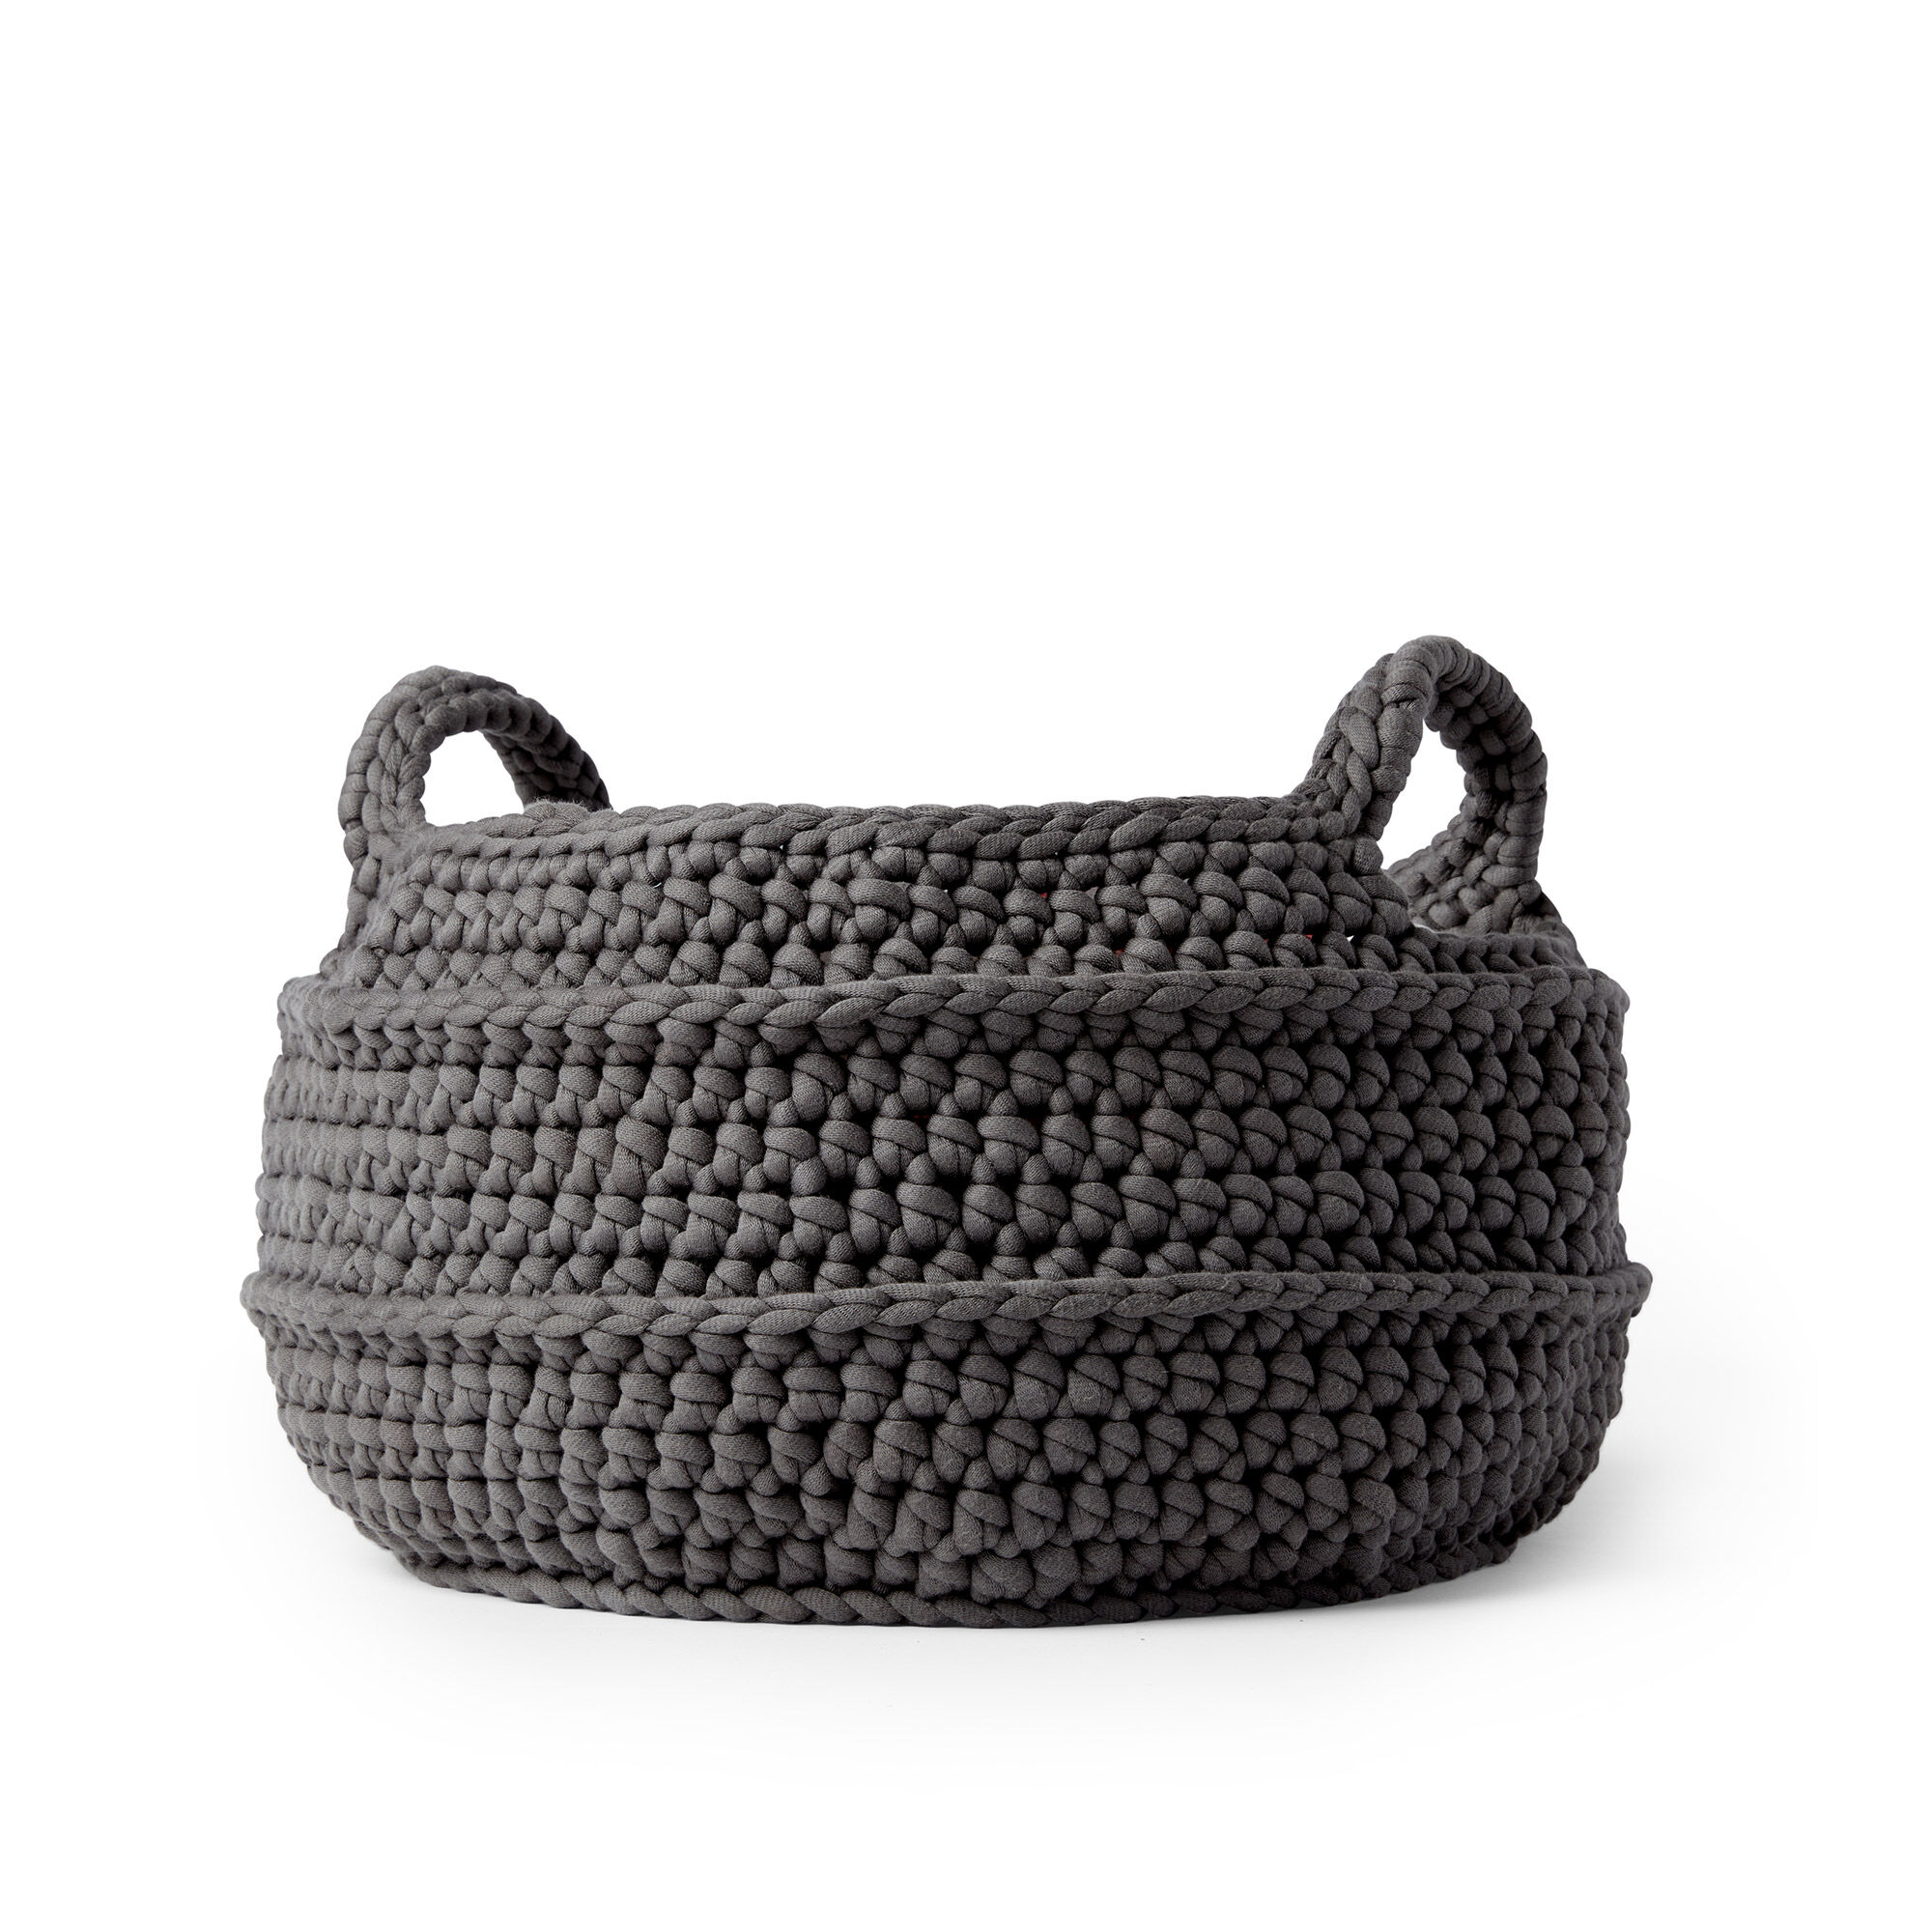 Bernat Crochet Basket with Handles